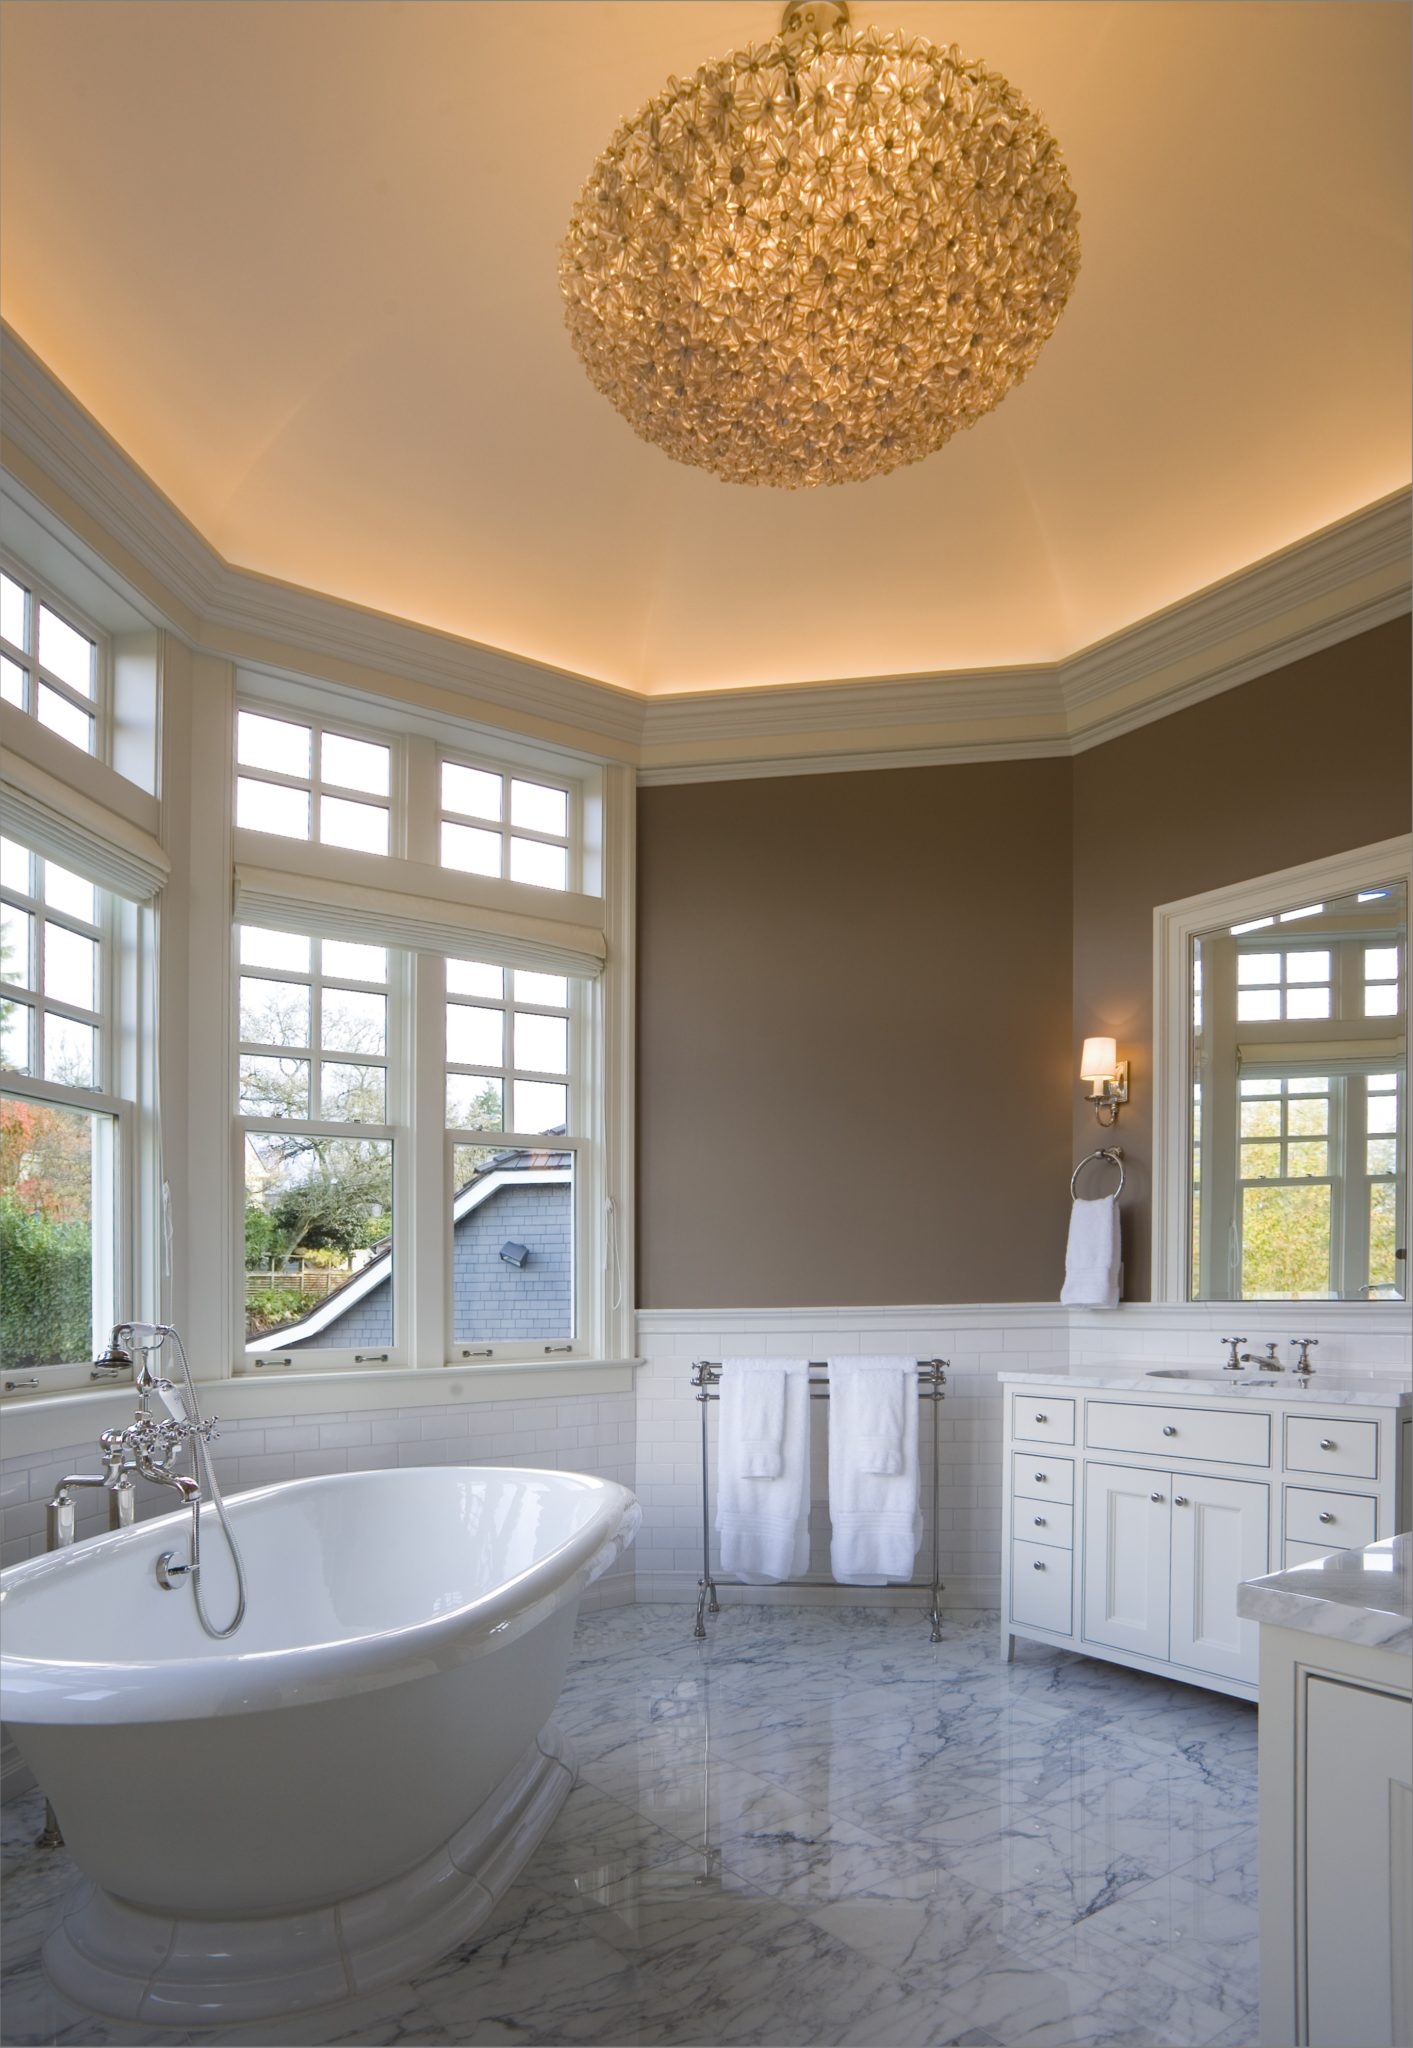 Seattle master bathroom by LeeAnn Baker Interiors Ltd.